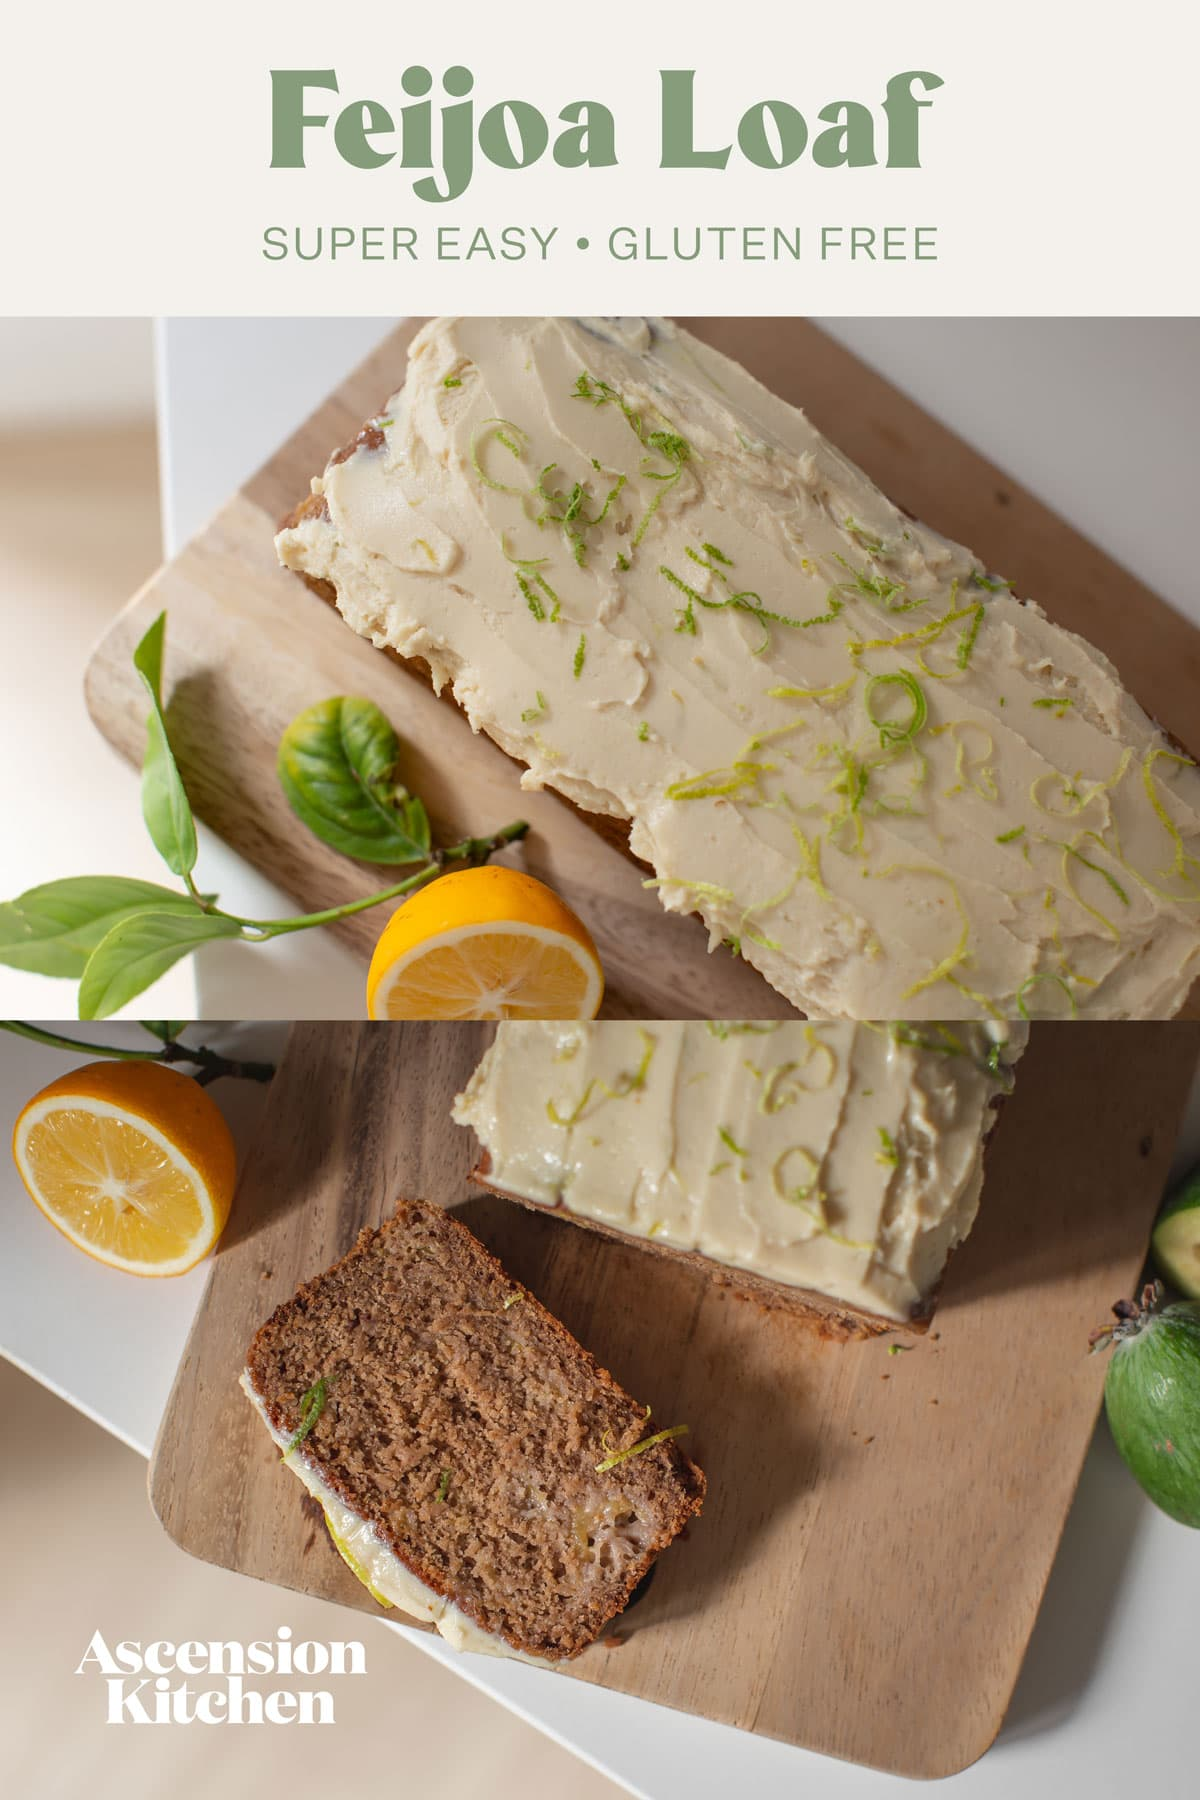 A pinterest image to showcase this recipe - there are two shots of the loaf, one whole, one sliced, with the recipe title printed over the top.